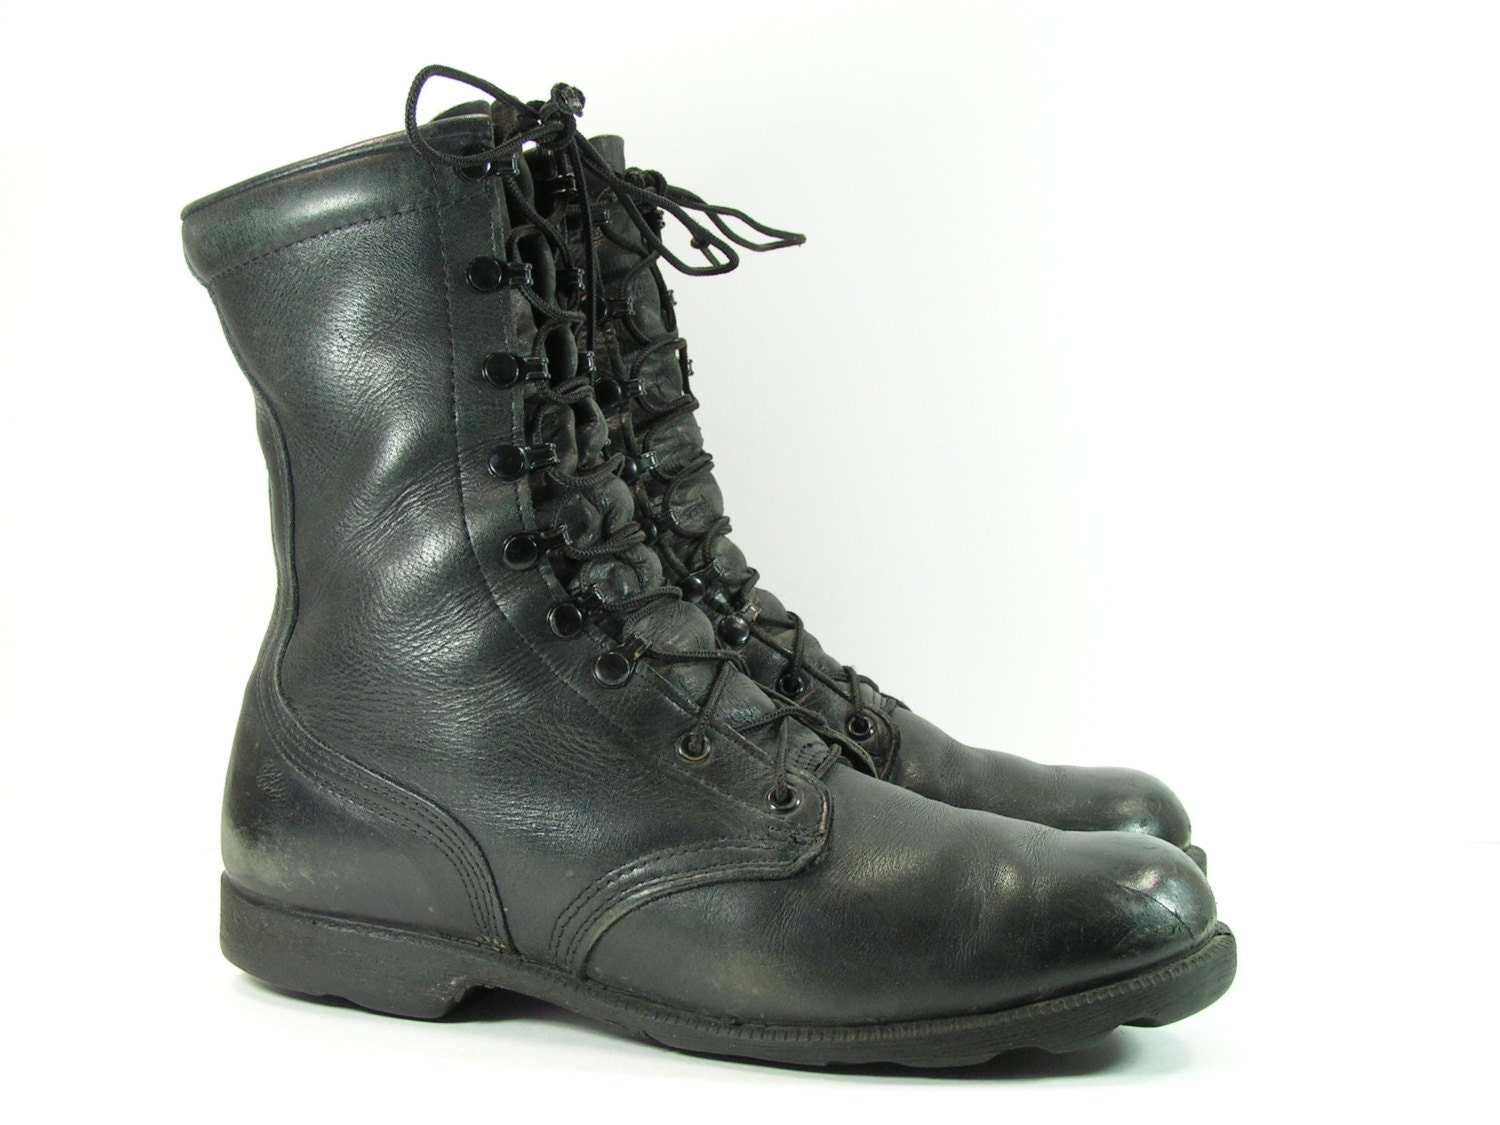 vintage combat boots mens 10 5 d black leather jungle